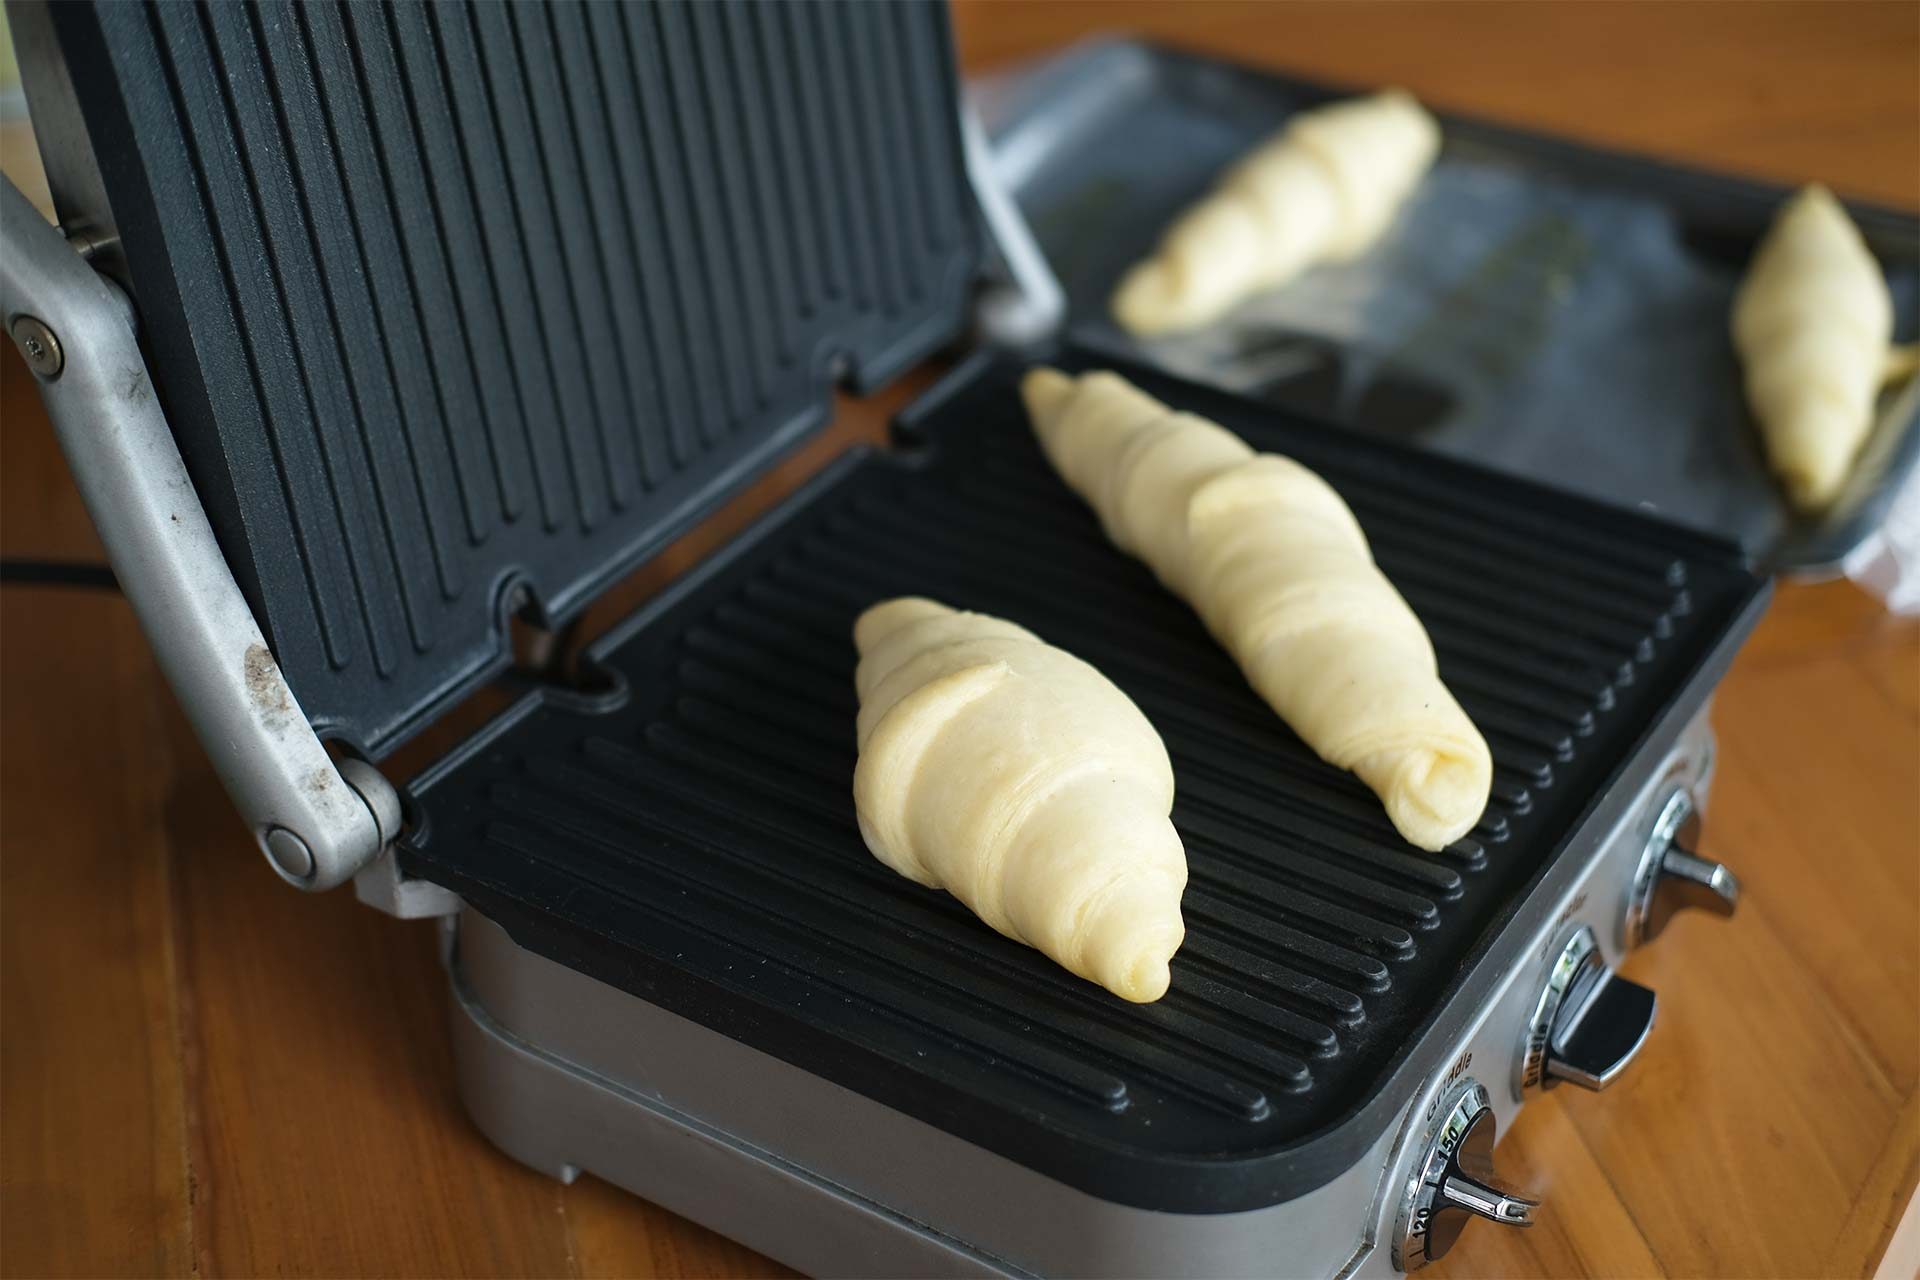 Grilling the pastry